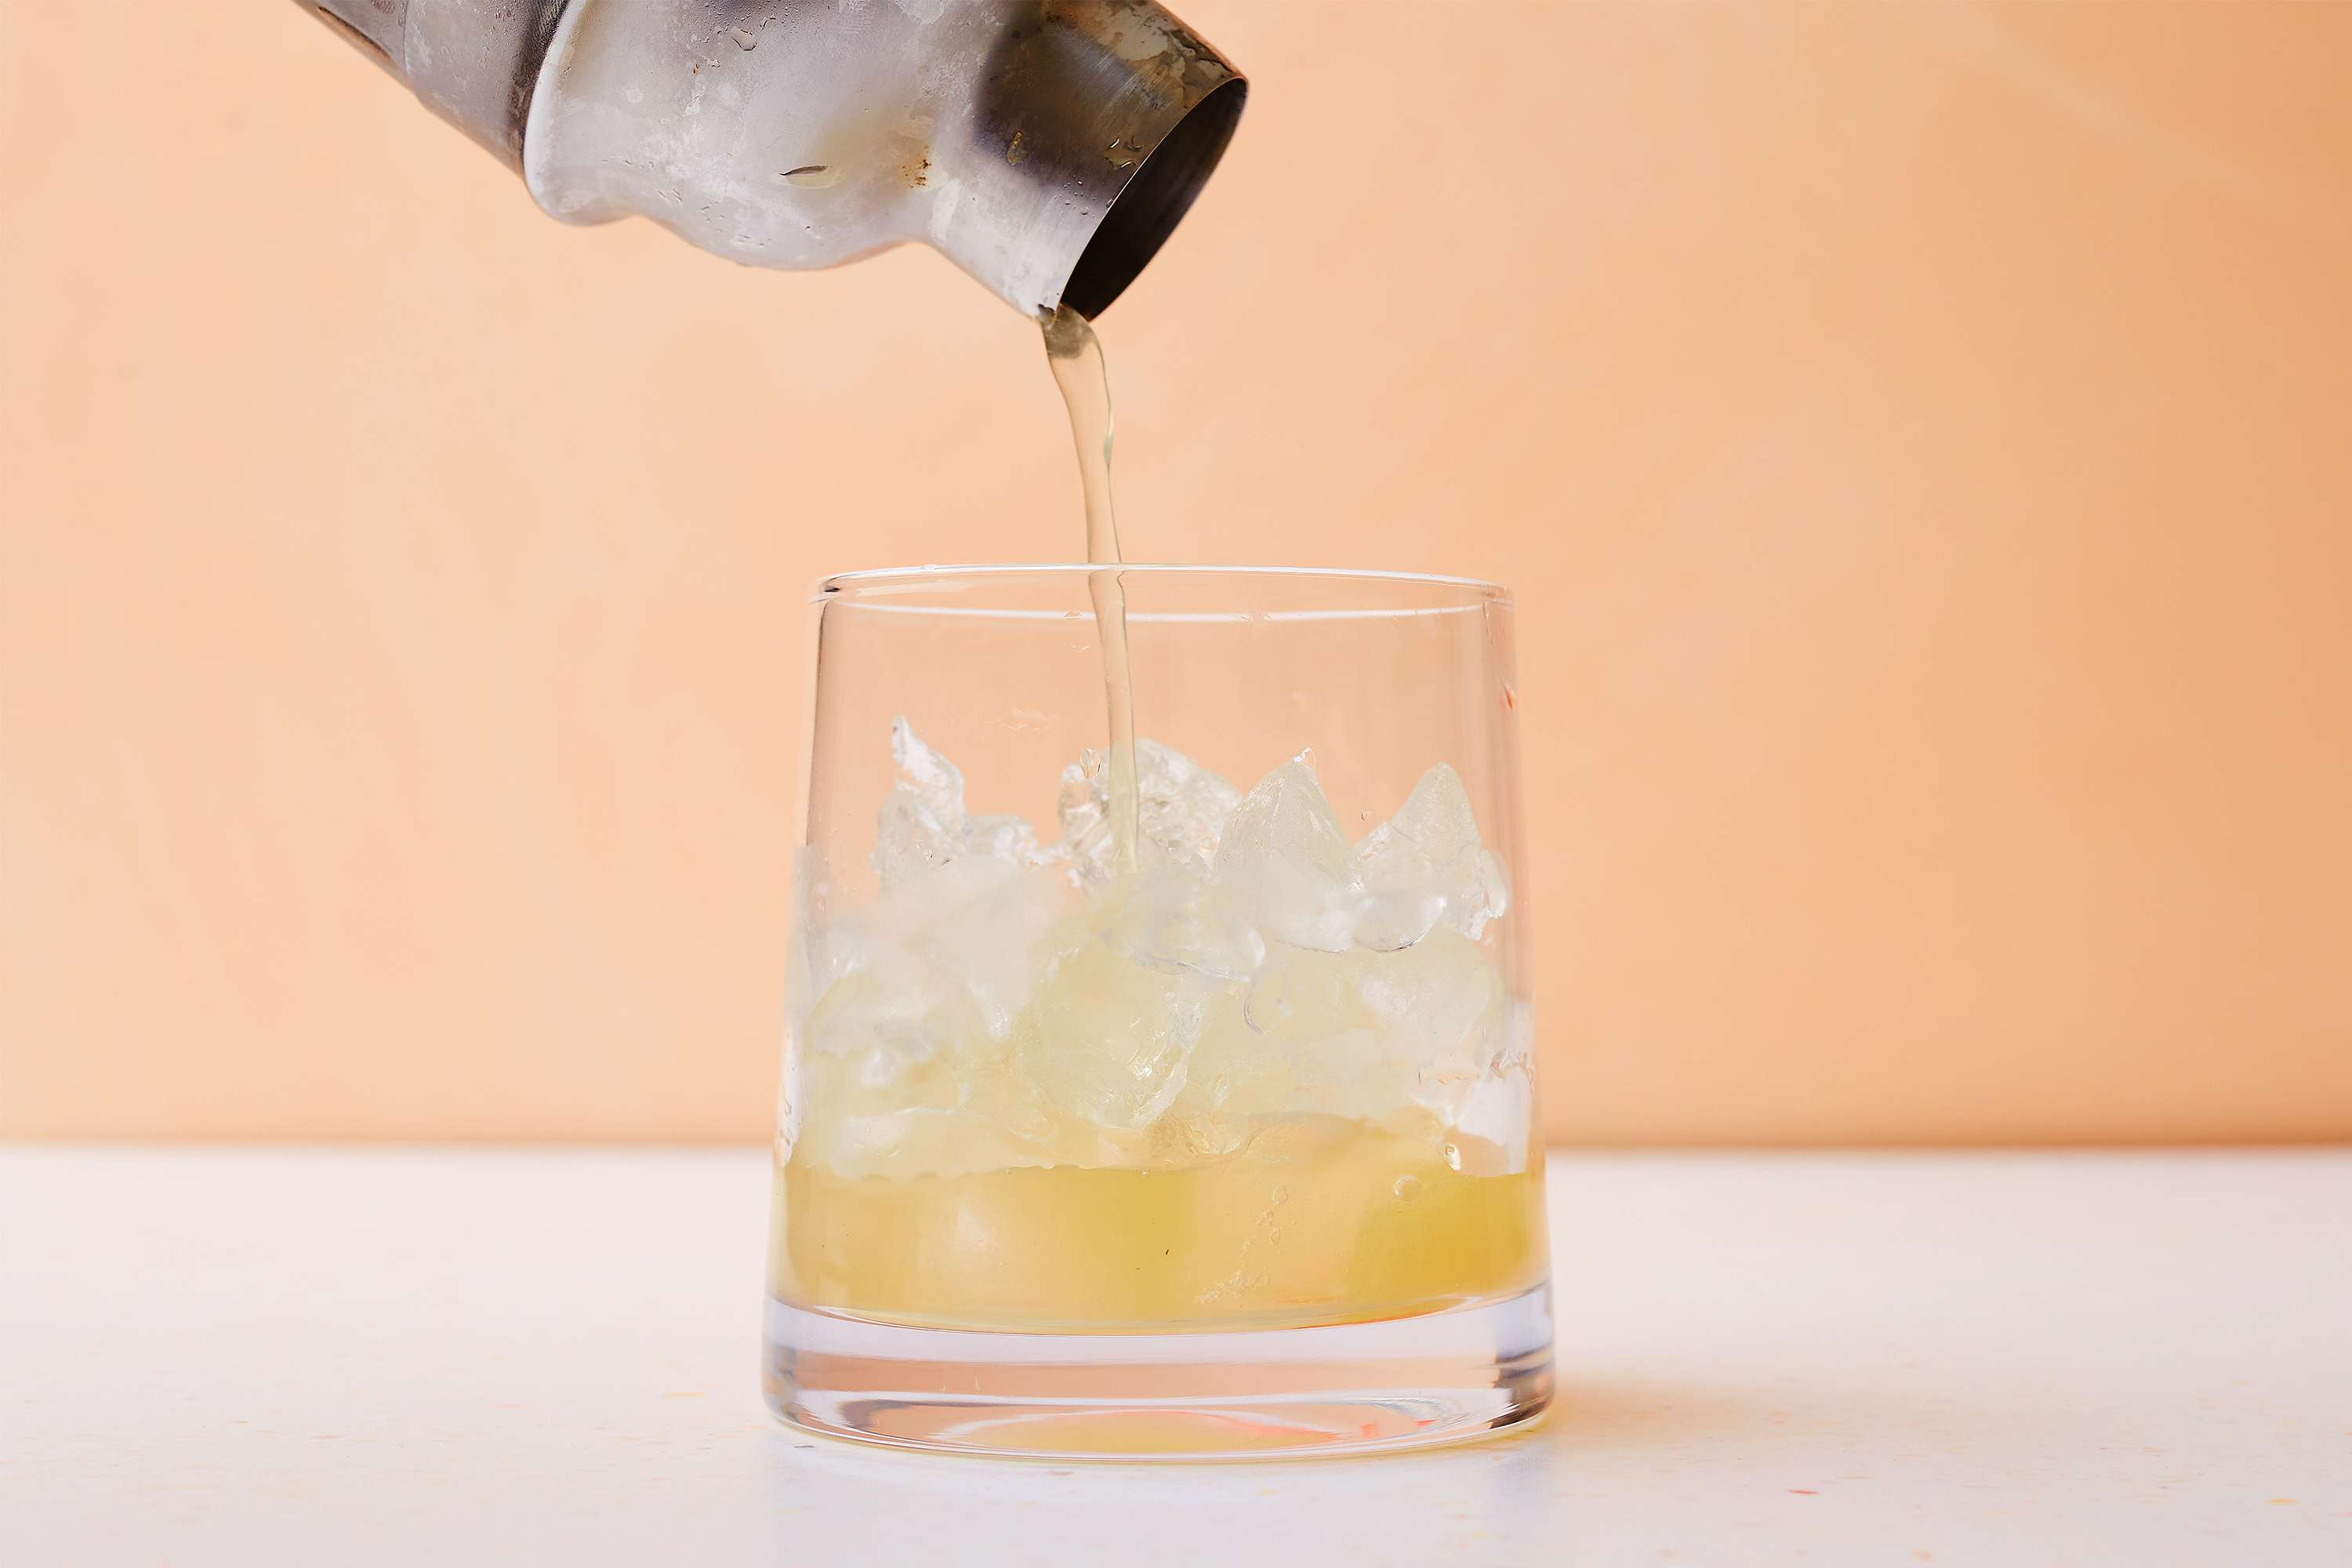 Strain cocktail into a large old-fashioned glass filled with fresh ice